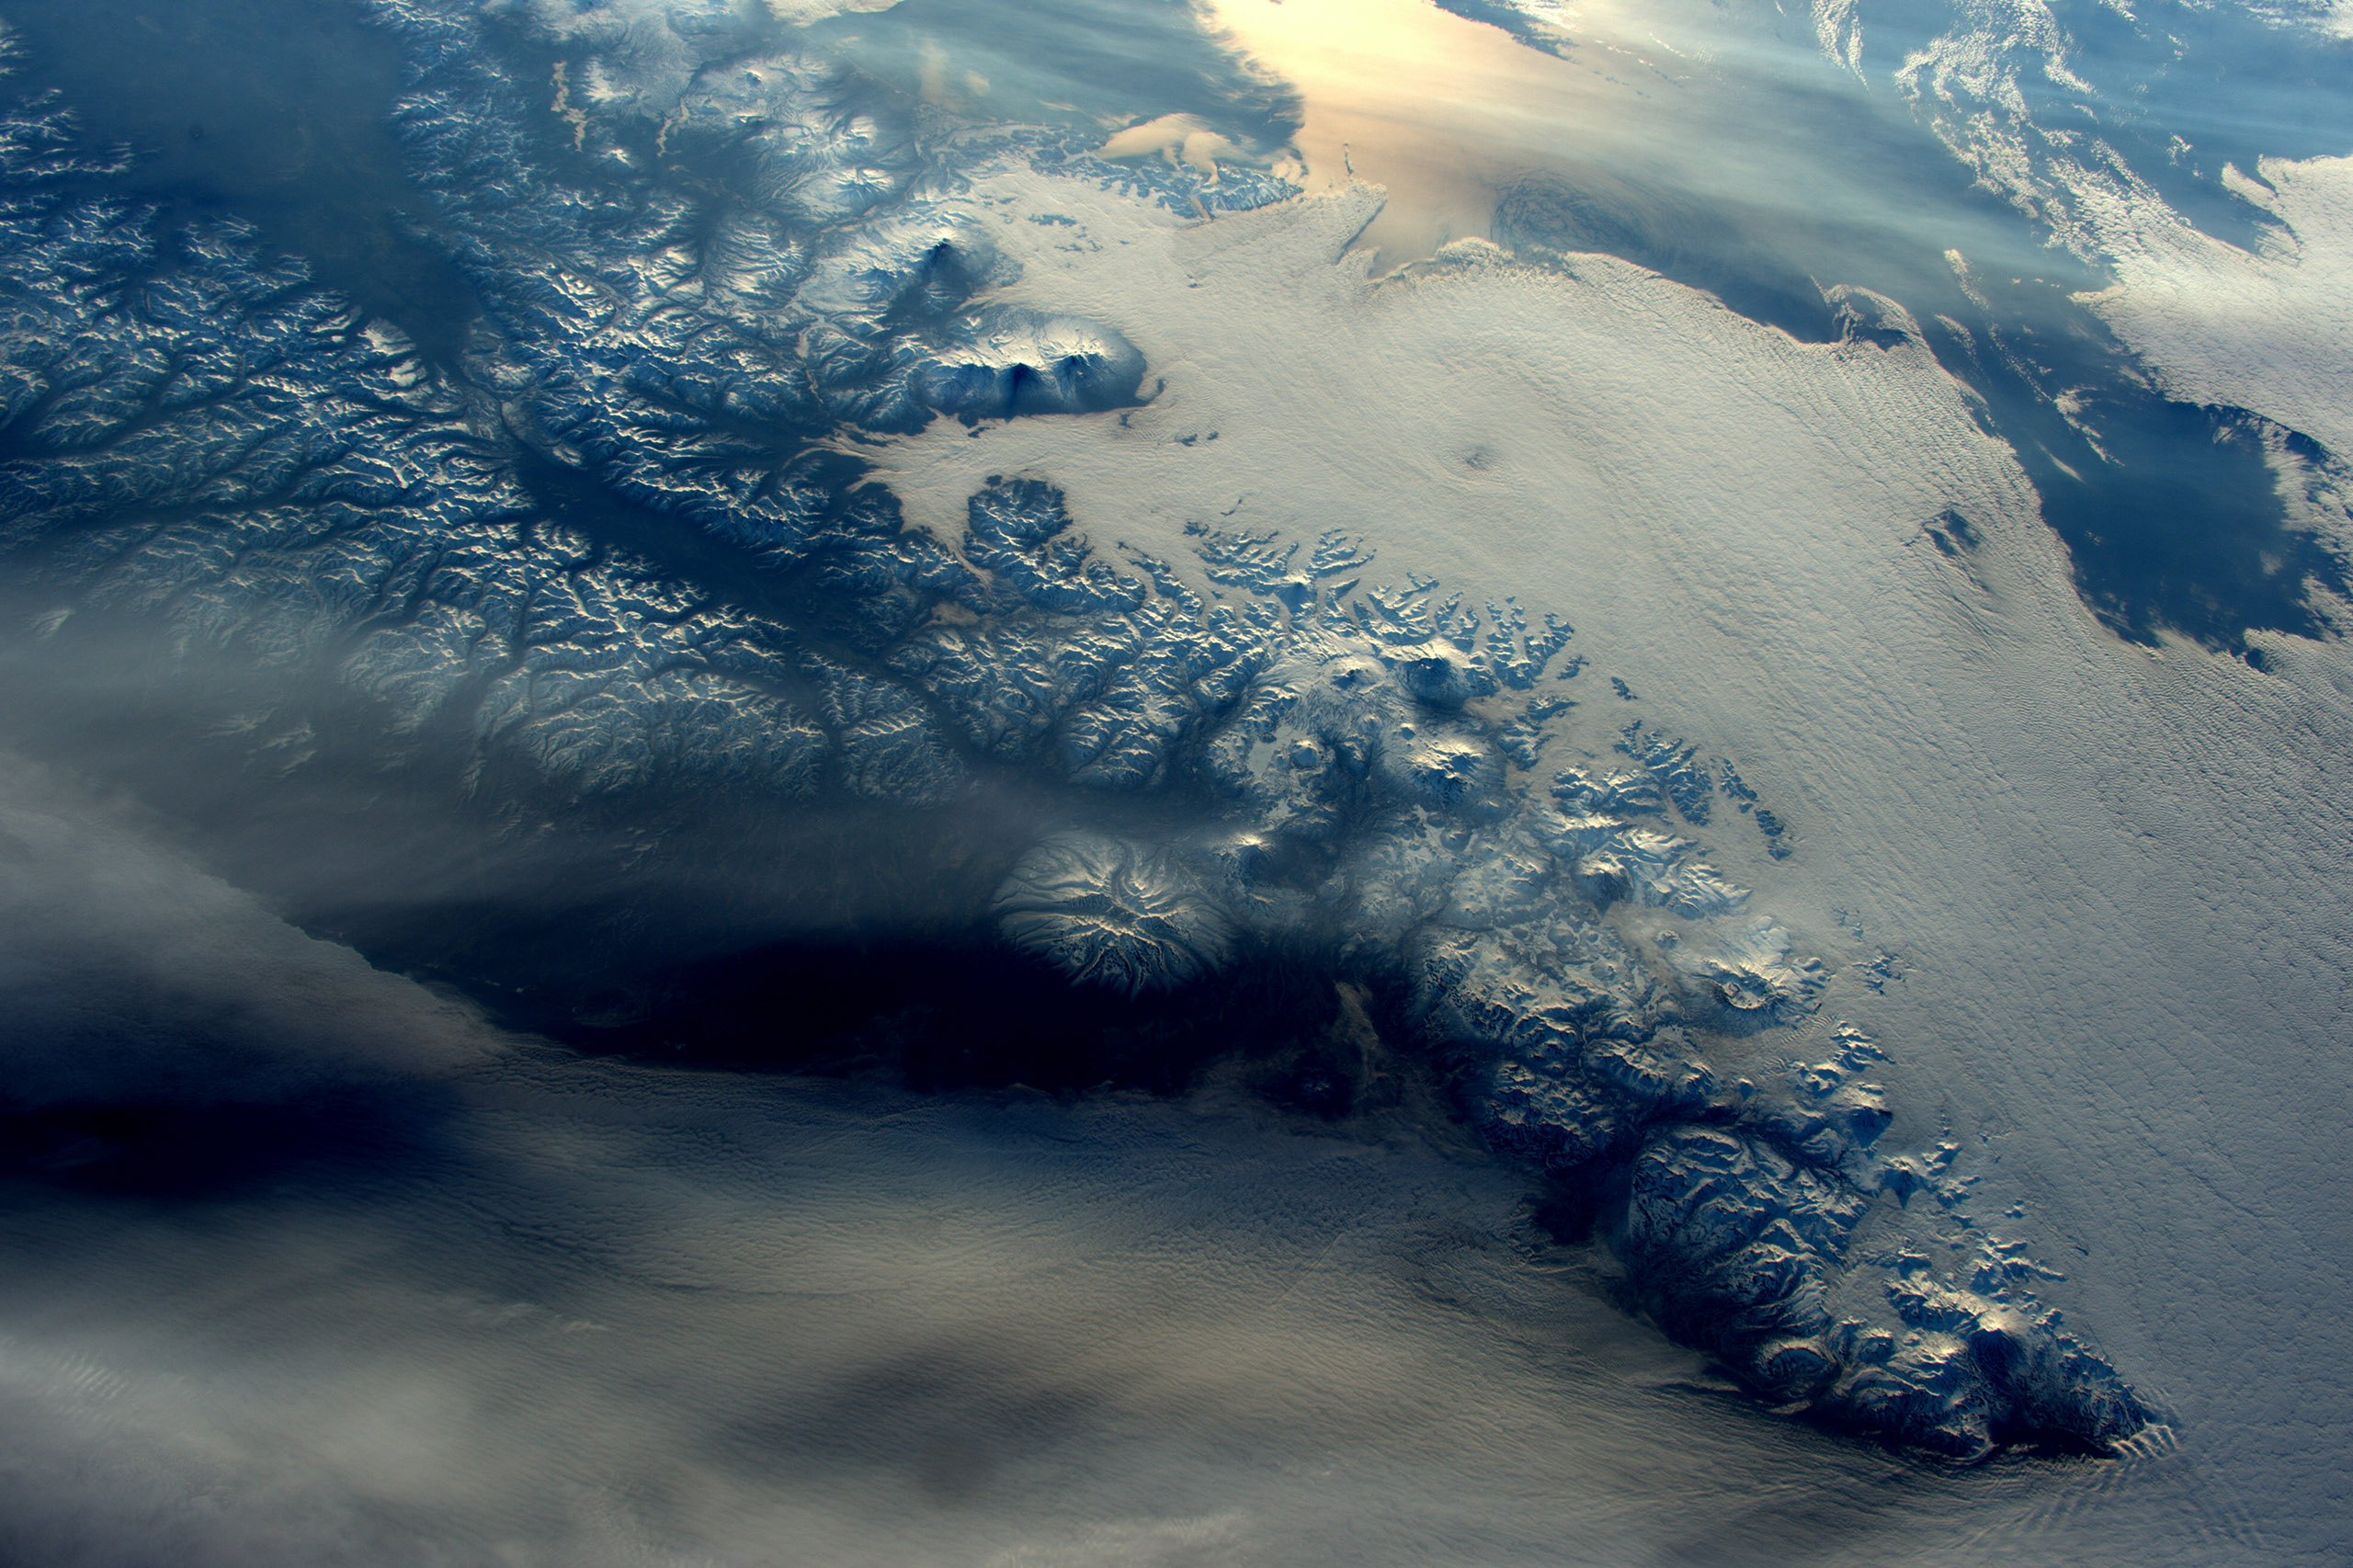 Volcanoes, part of the Pacific  Ring of FIre  in Kamchatka, Russia, May 16, 2016.